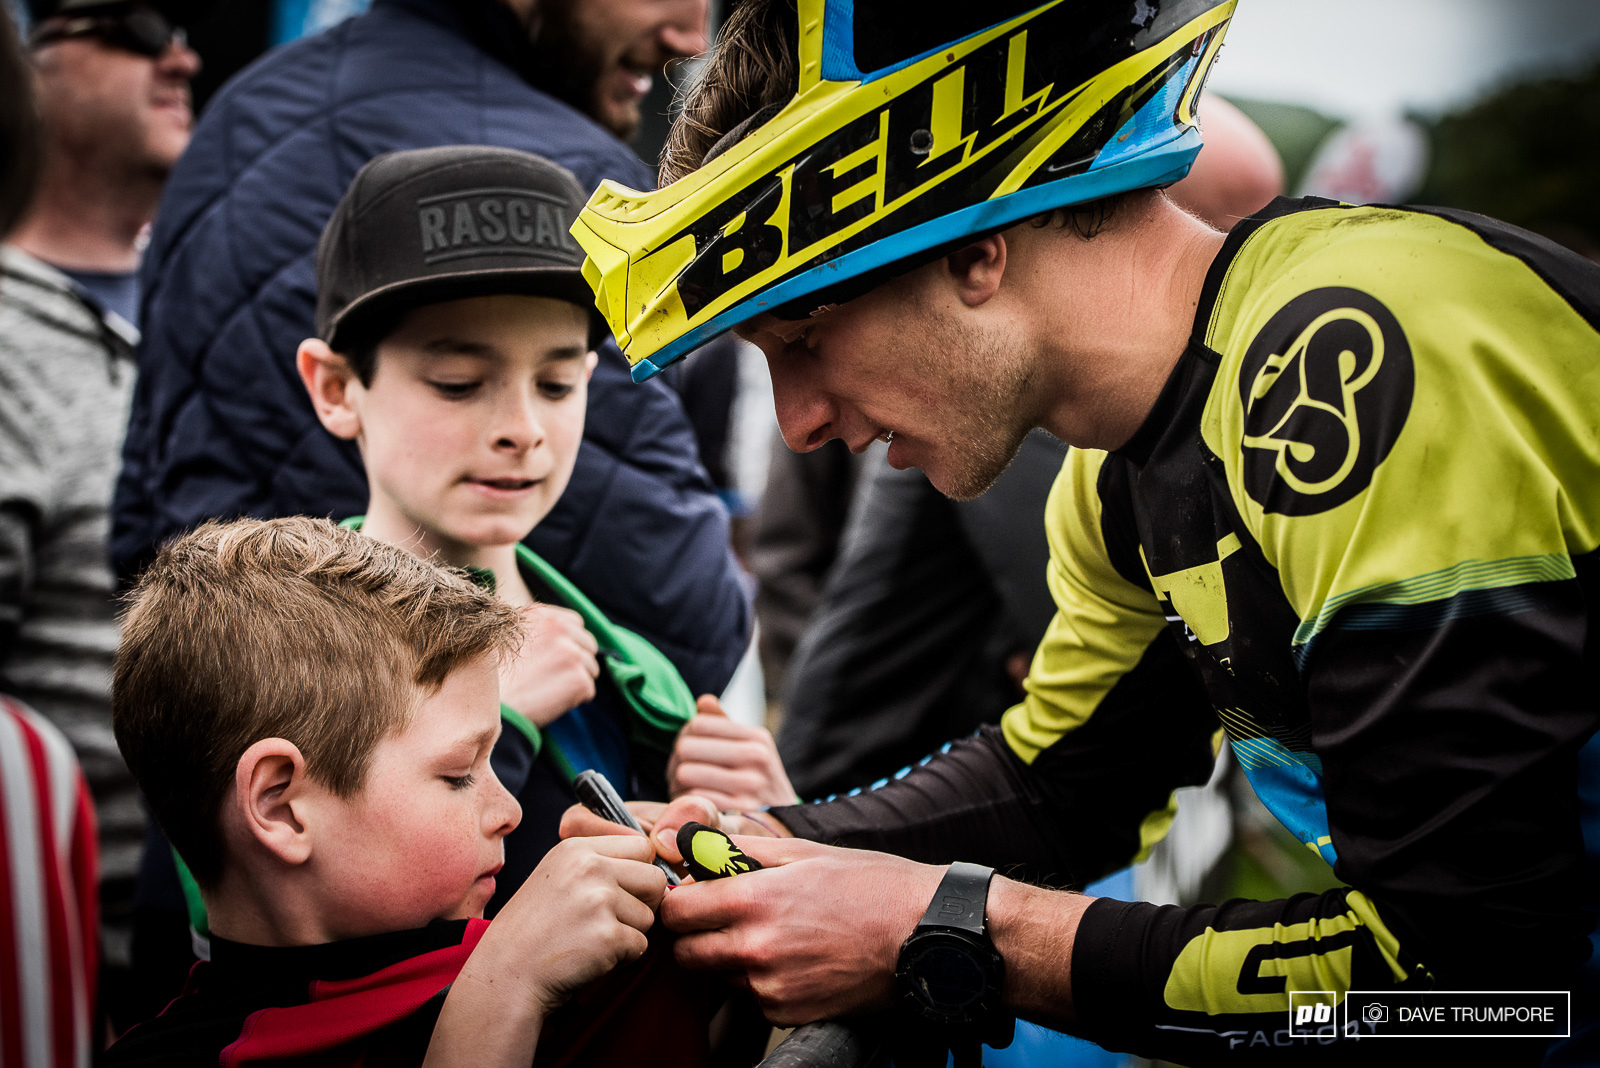 Martin Maes is by far one of the friendliest guys on the circuit and spent time long after the race hanging with the many young fans.